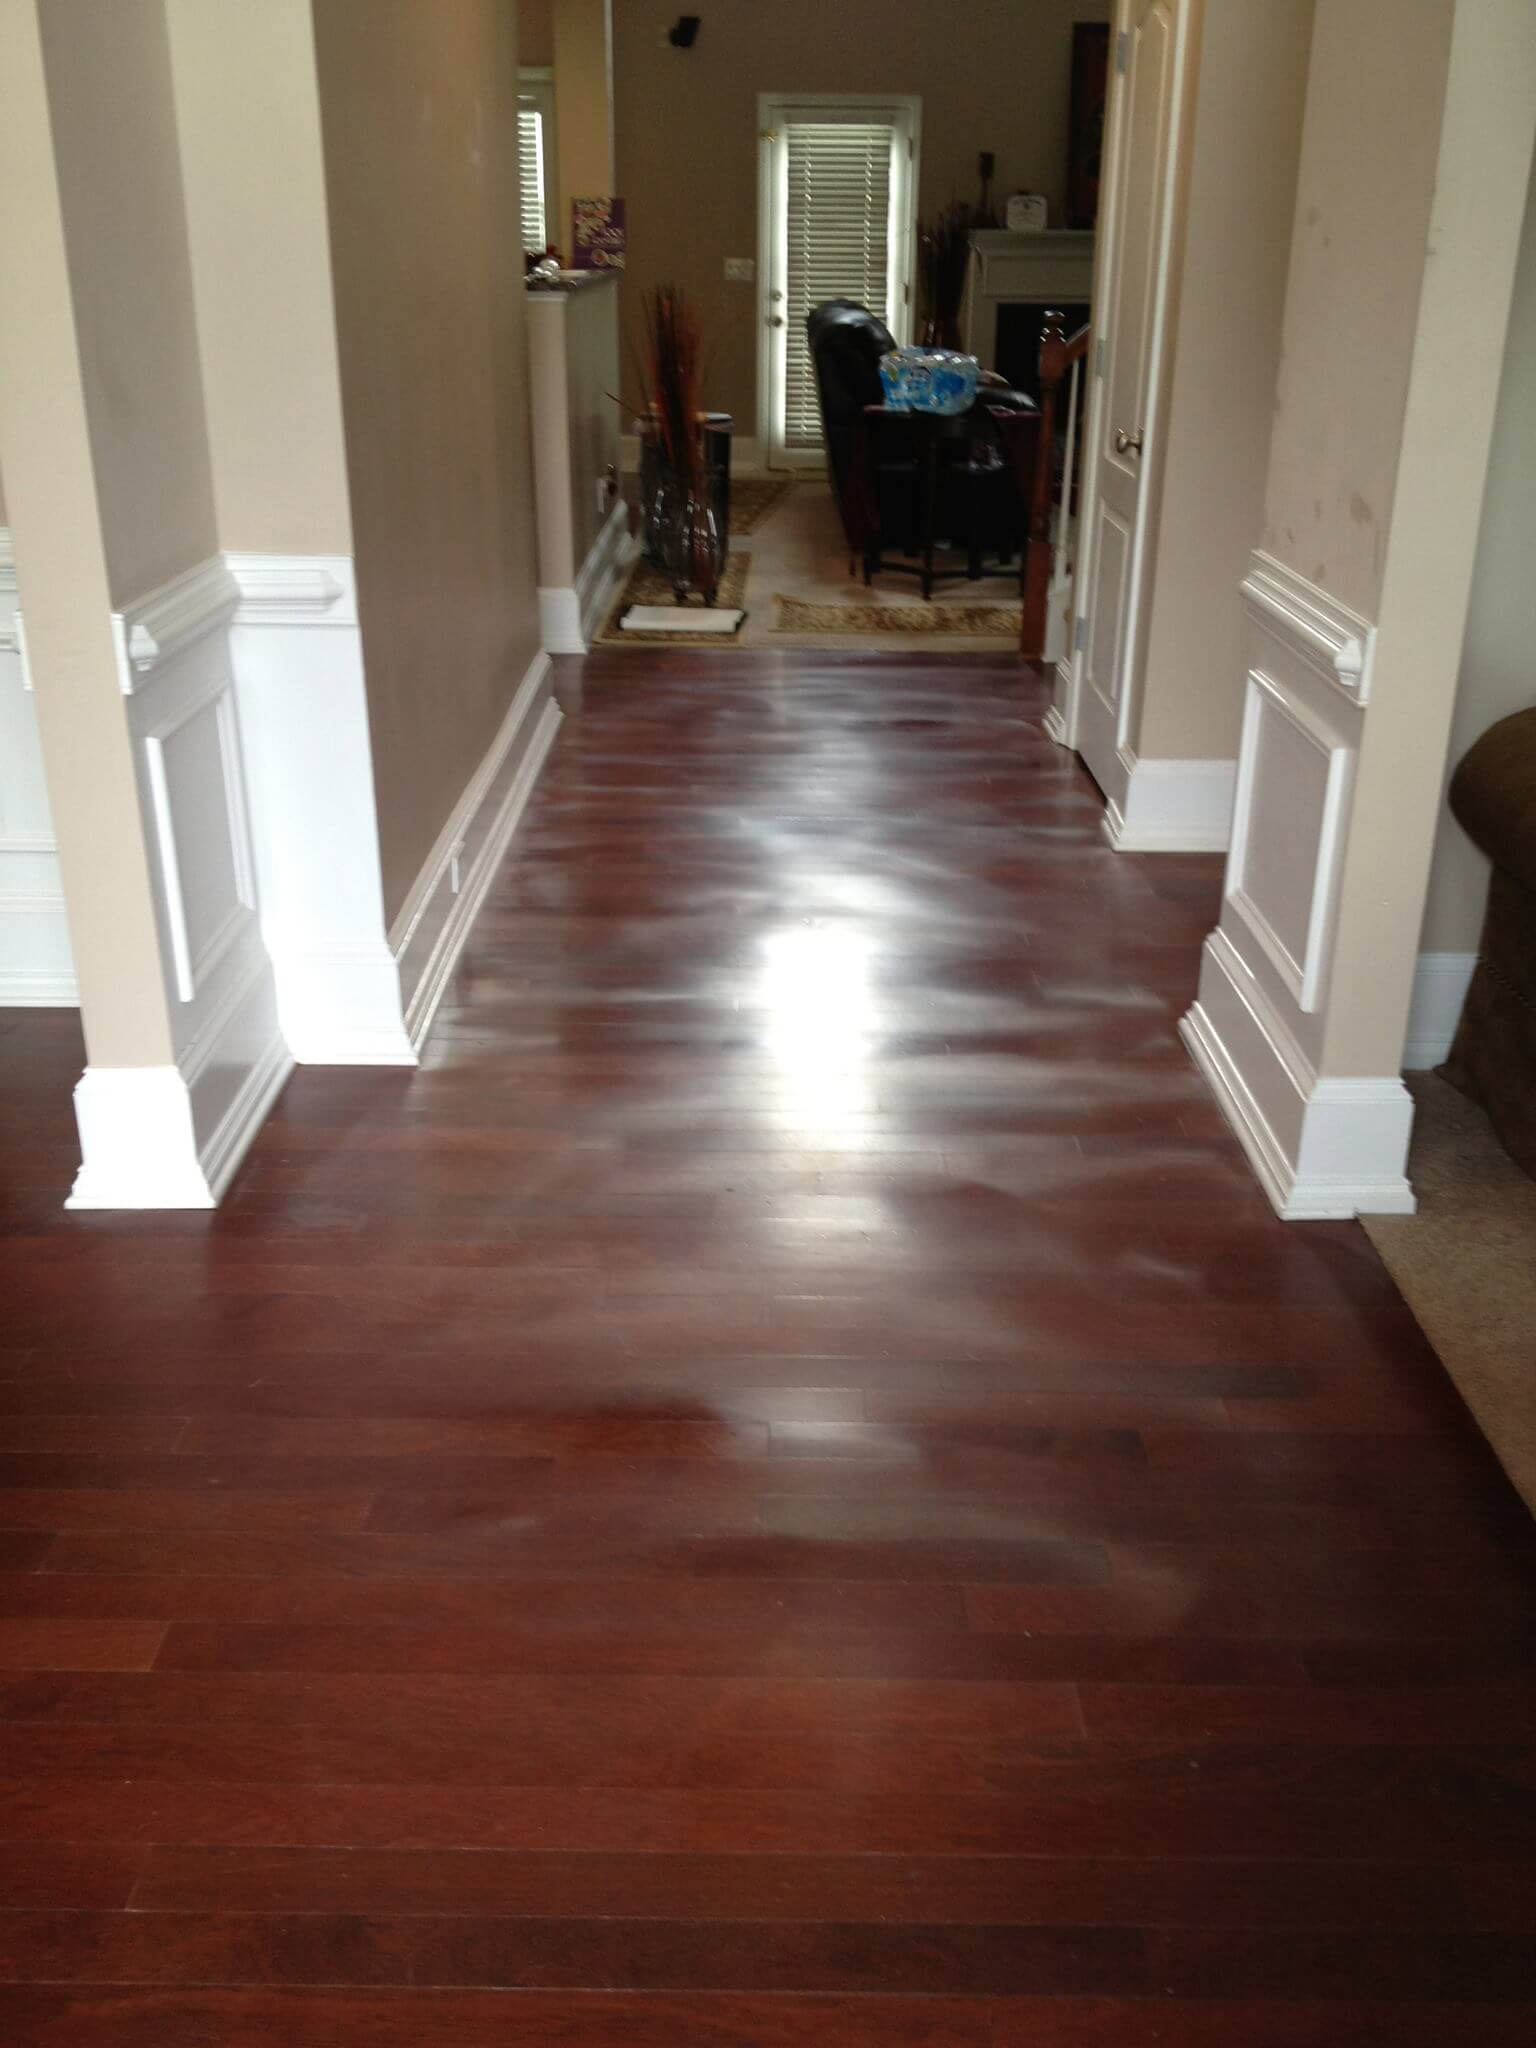 a warping and horribly damaged hardwood floor